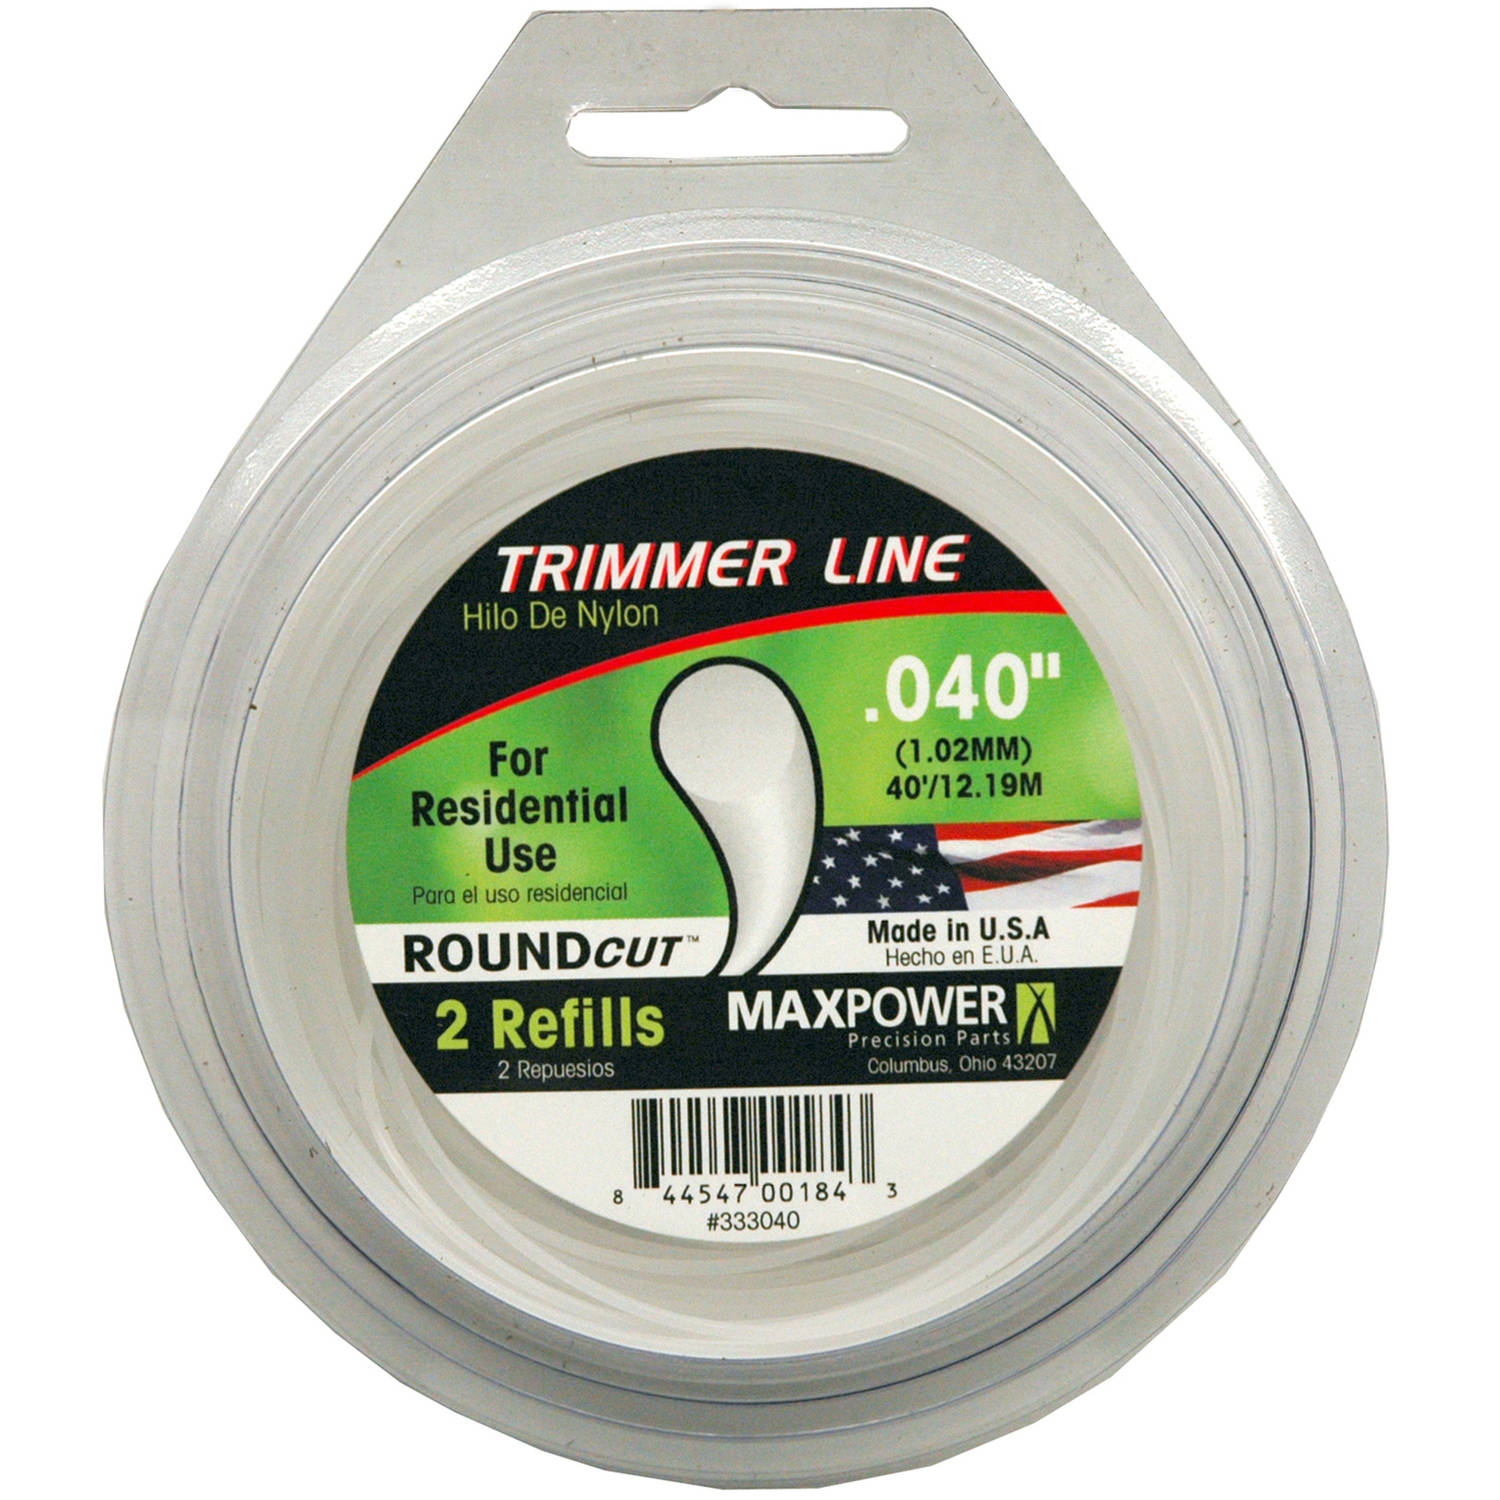 "Maxpower 333040 .040"" x 40' Trimmer Line"